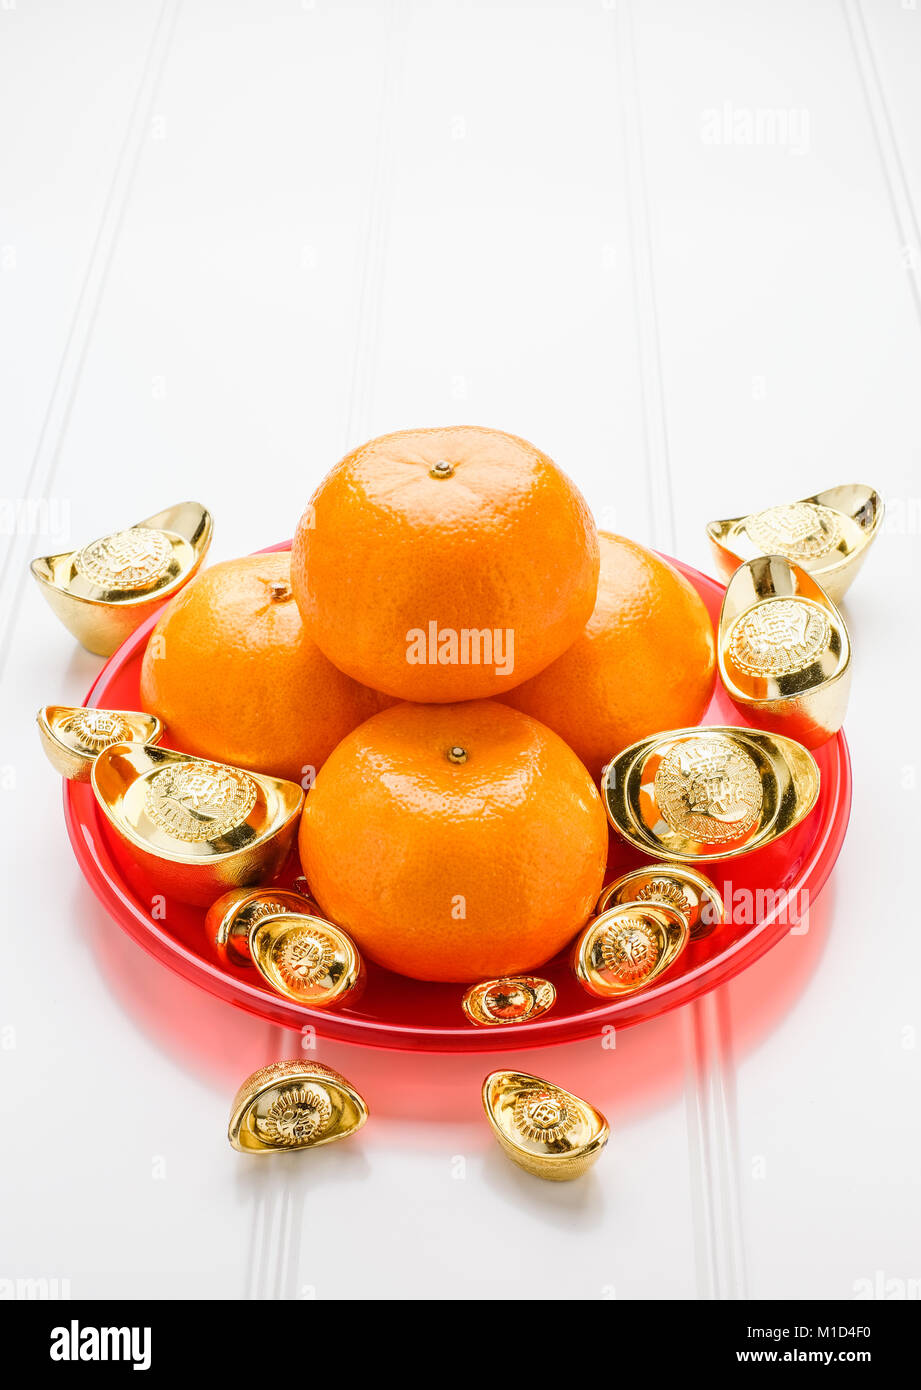 Chinese New year,gold ingots and tangerine oranges on white wood table top,Chinese Language ingot mean wealthy - Stock Image